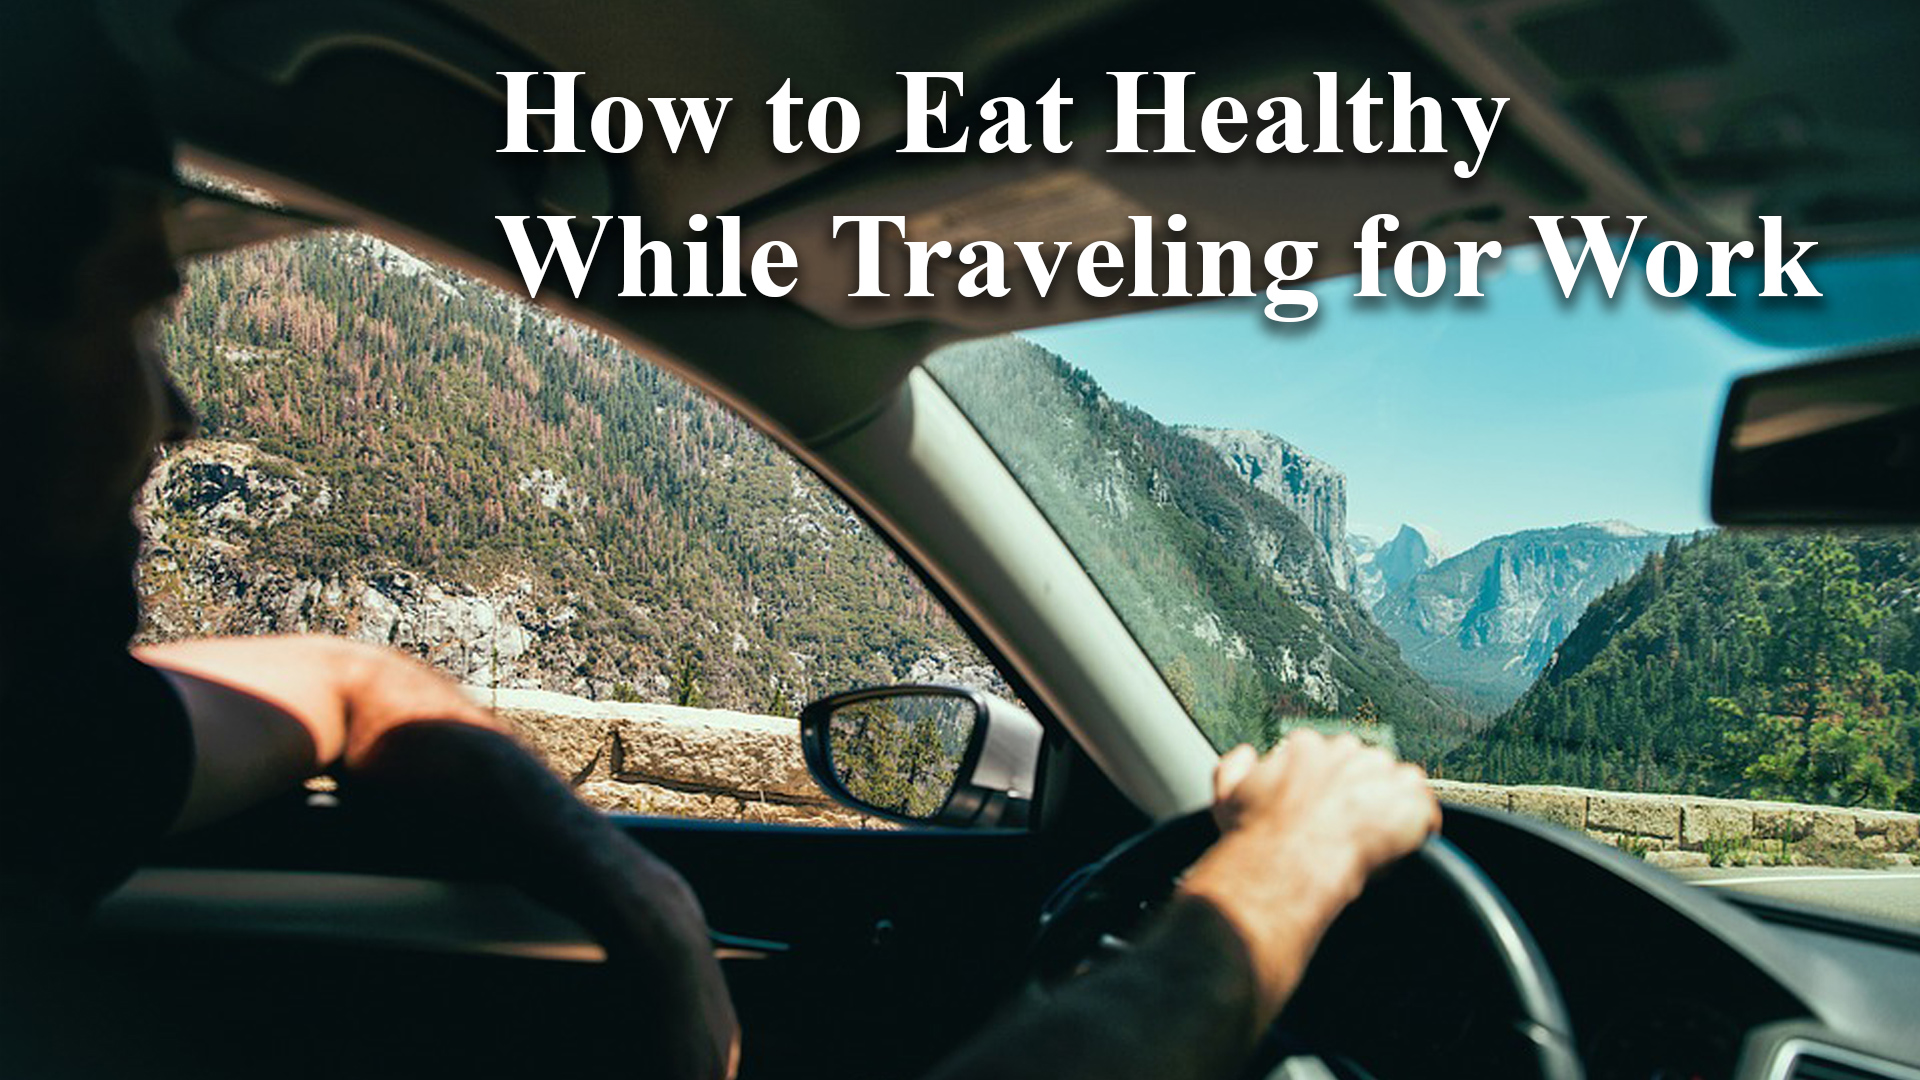 How to Eat Healthy While Traveling For Work or Business